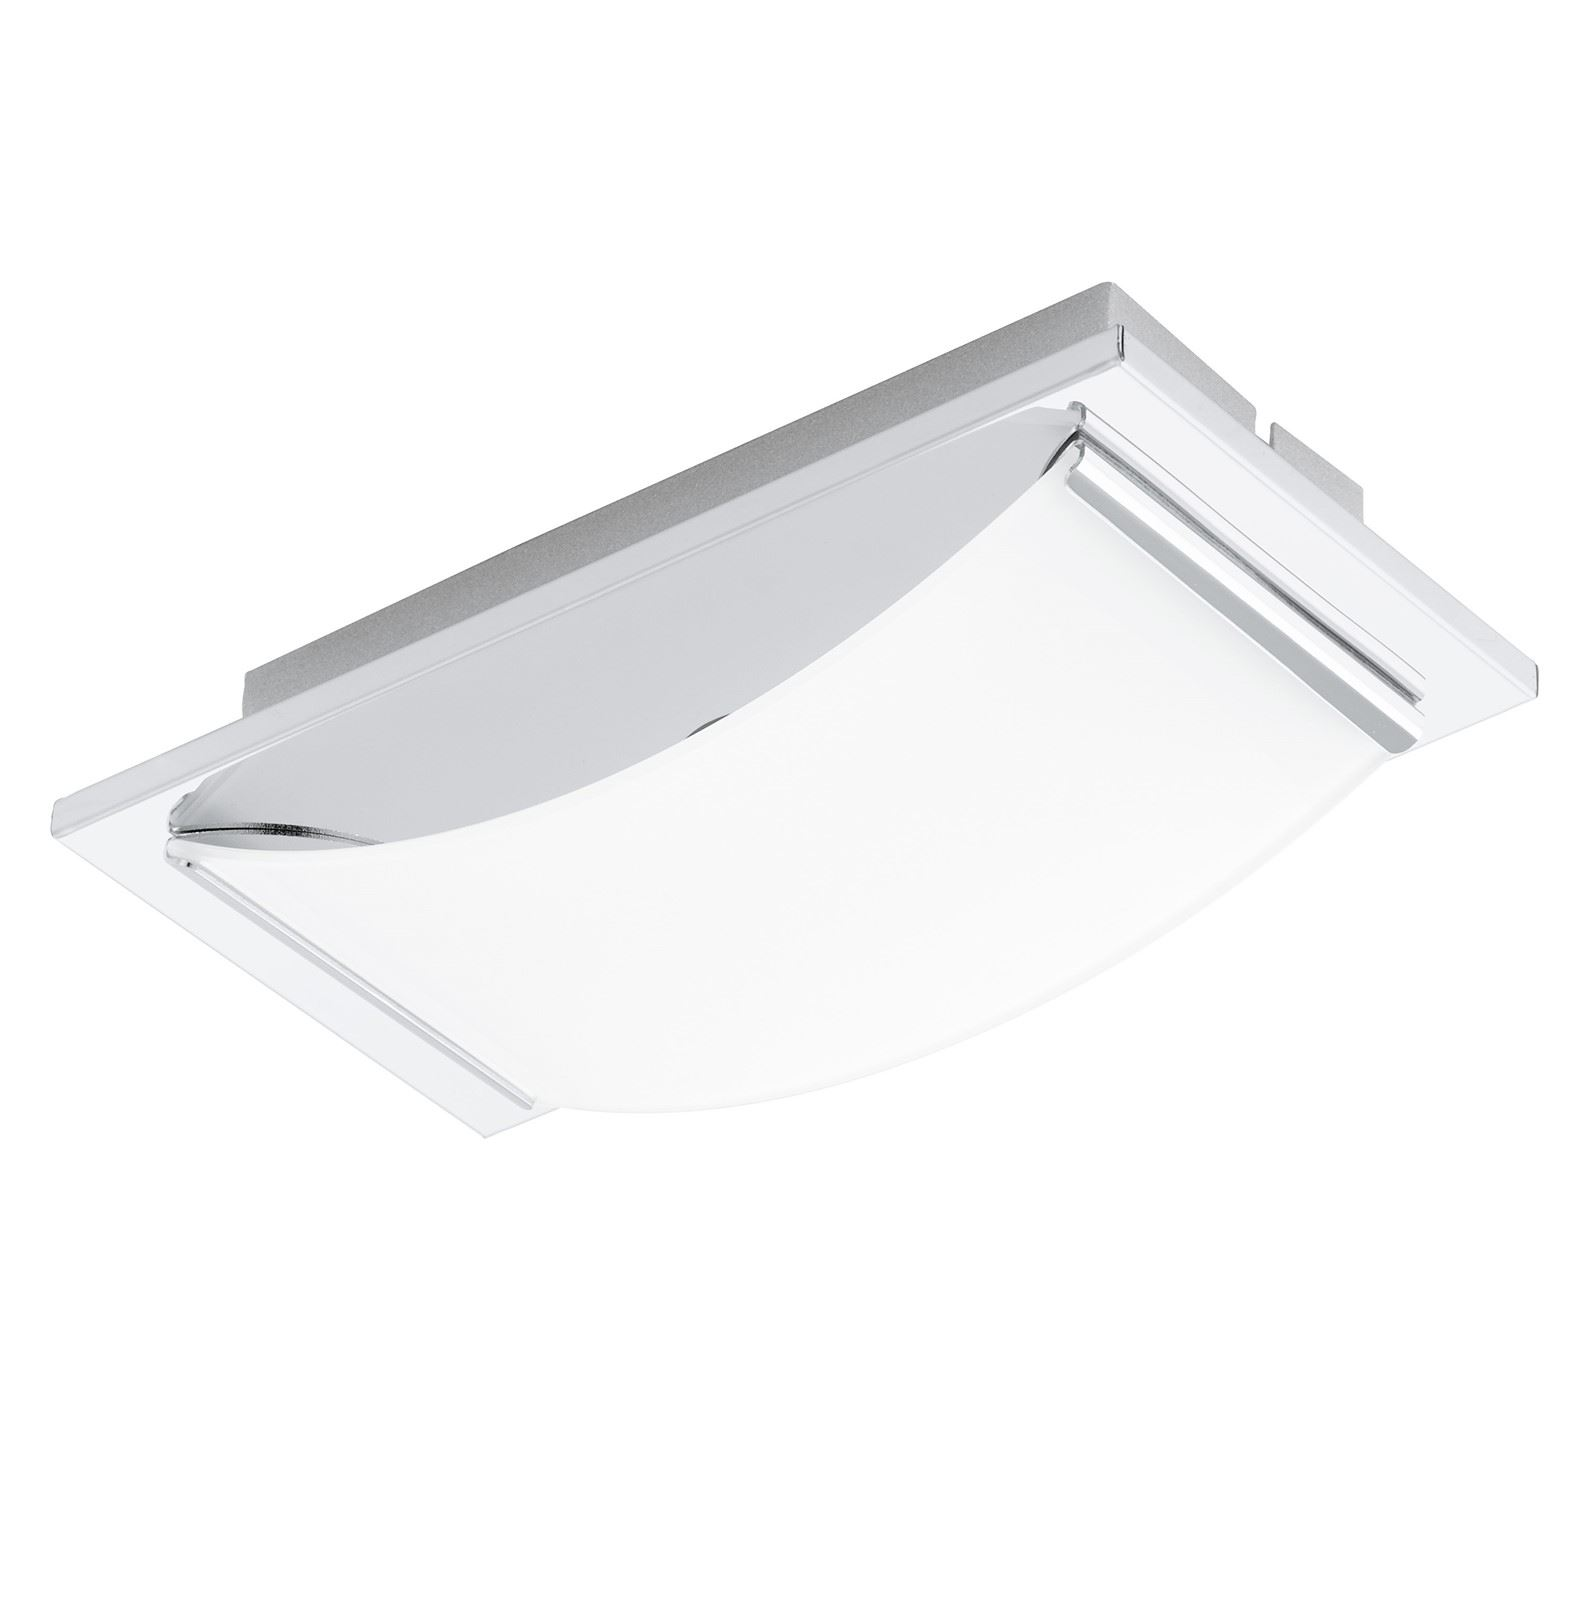 Wasao LED Wall Light/Ceiling Light 1x 5.4W Stainless Steel Chrome White